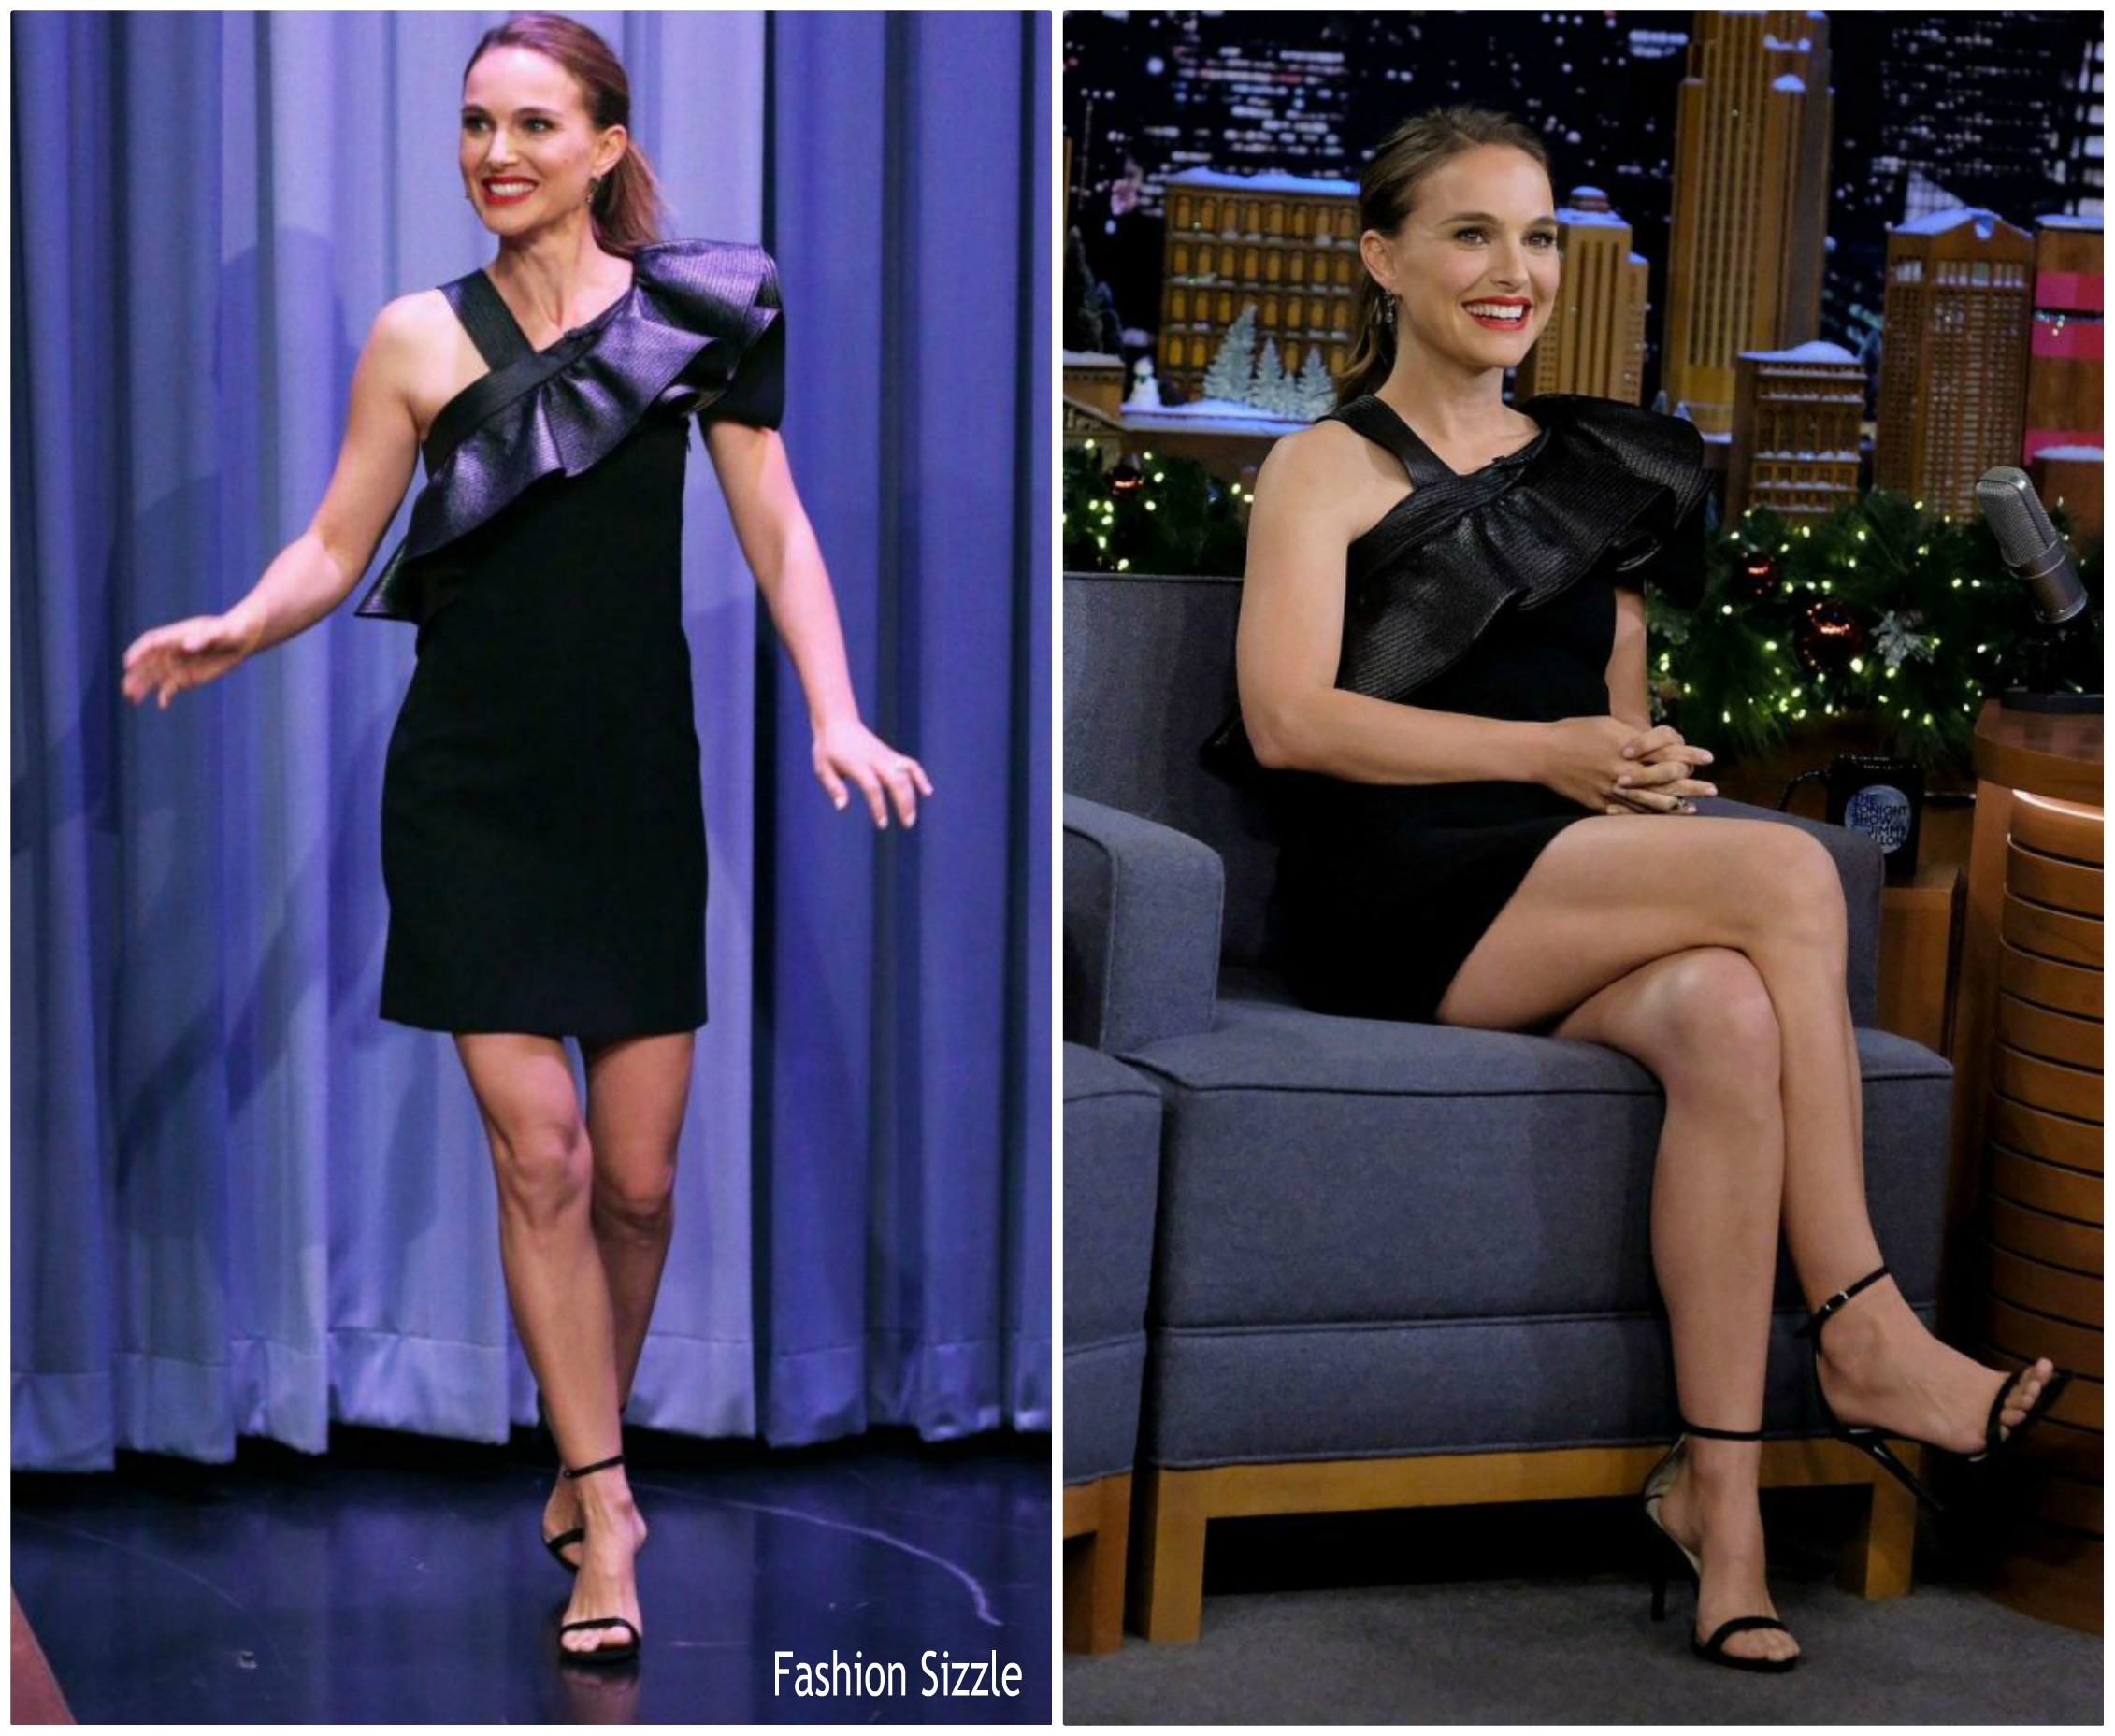 natalie-portman-in-givenchy-the-tonight-show-starring-jimmy-fallon